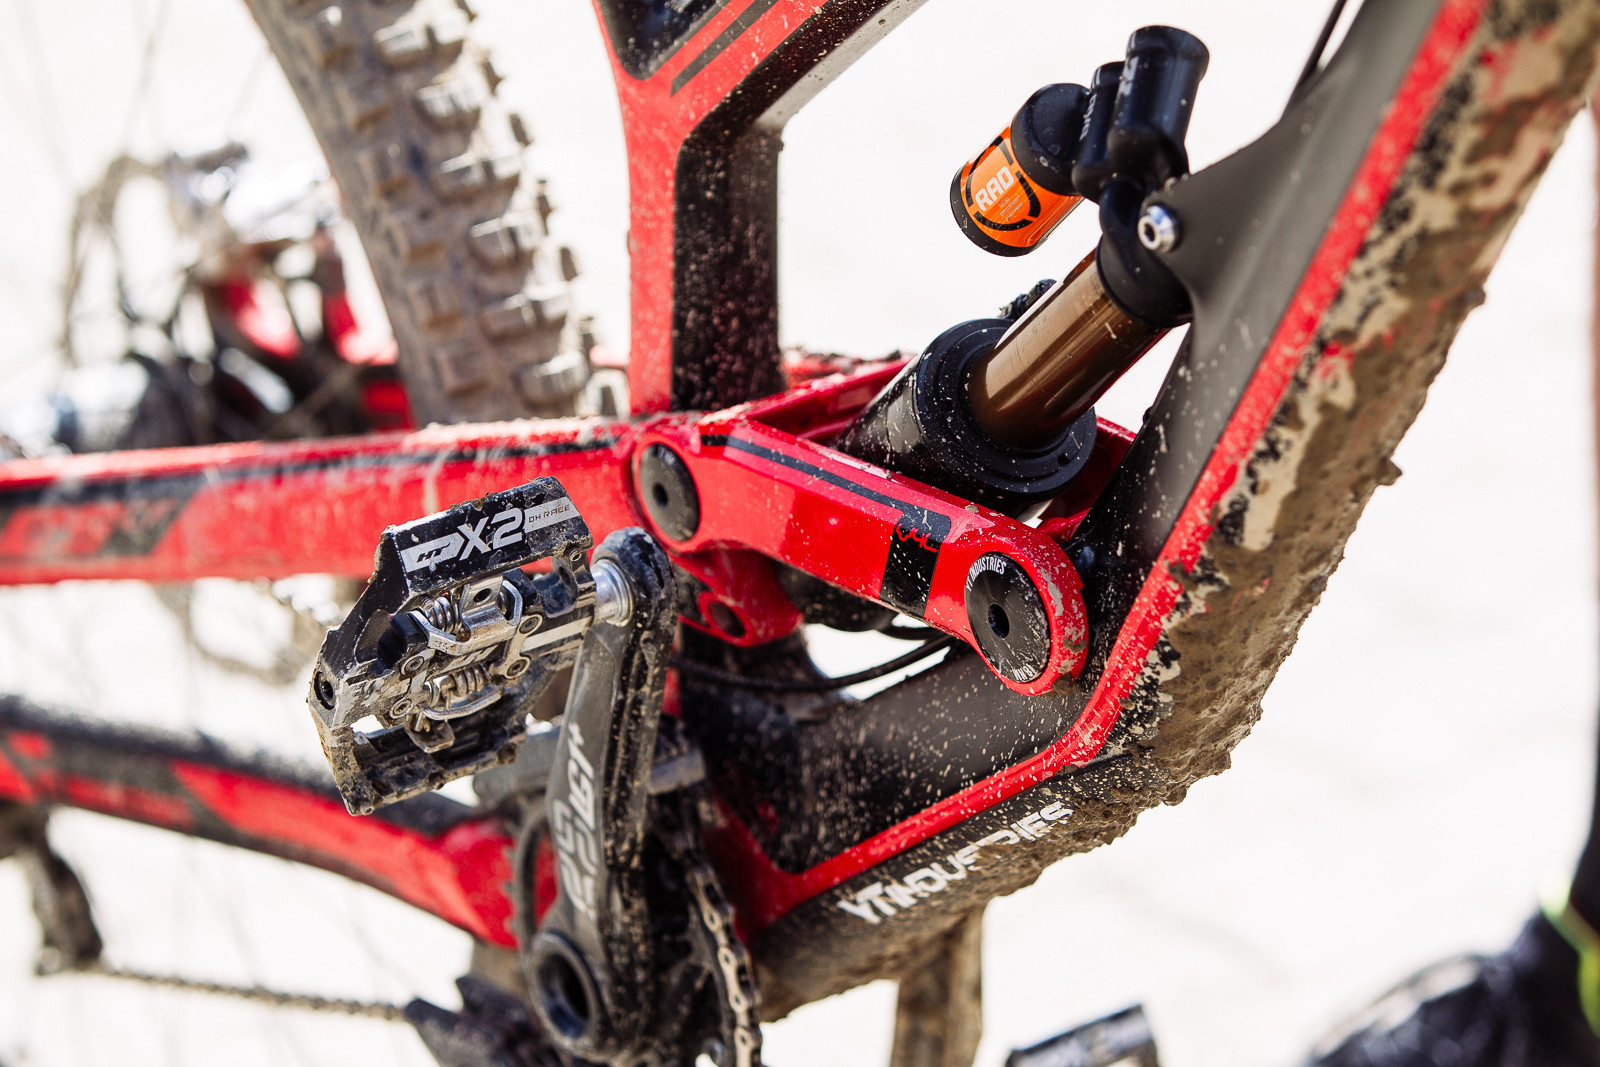 WINNING BIKE: Aaron Gwin's YT TUES at Leogang - WINNING BIKE: Aaron Gwin's YT TUES at Leogang - Mountain Biking Pictures - Vital MTB